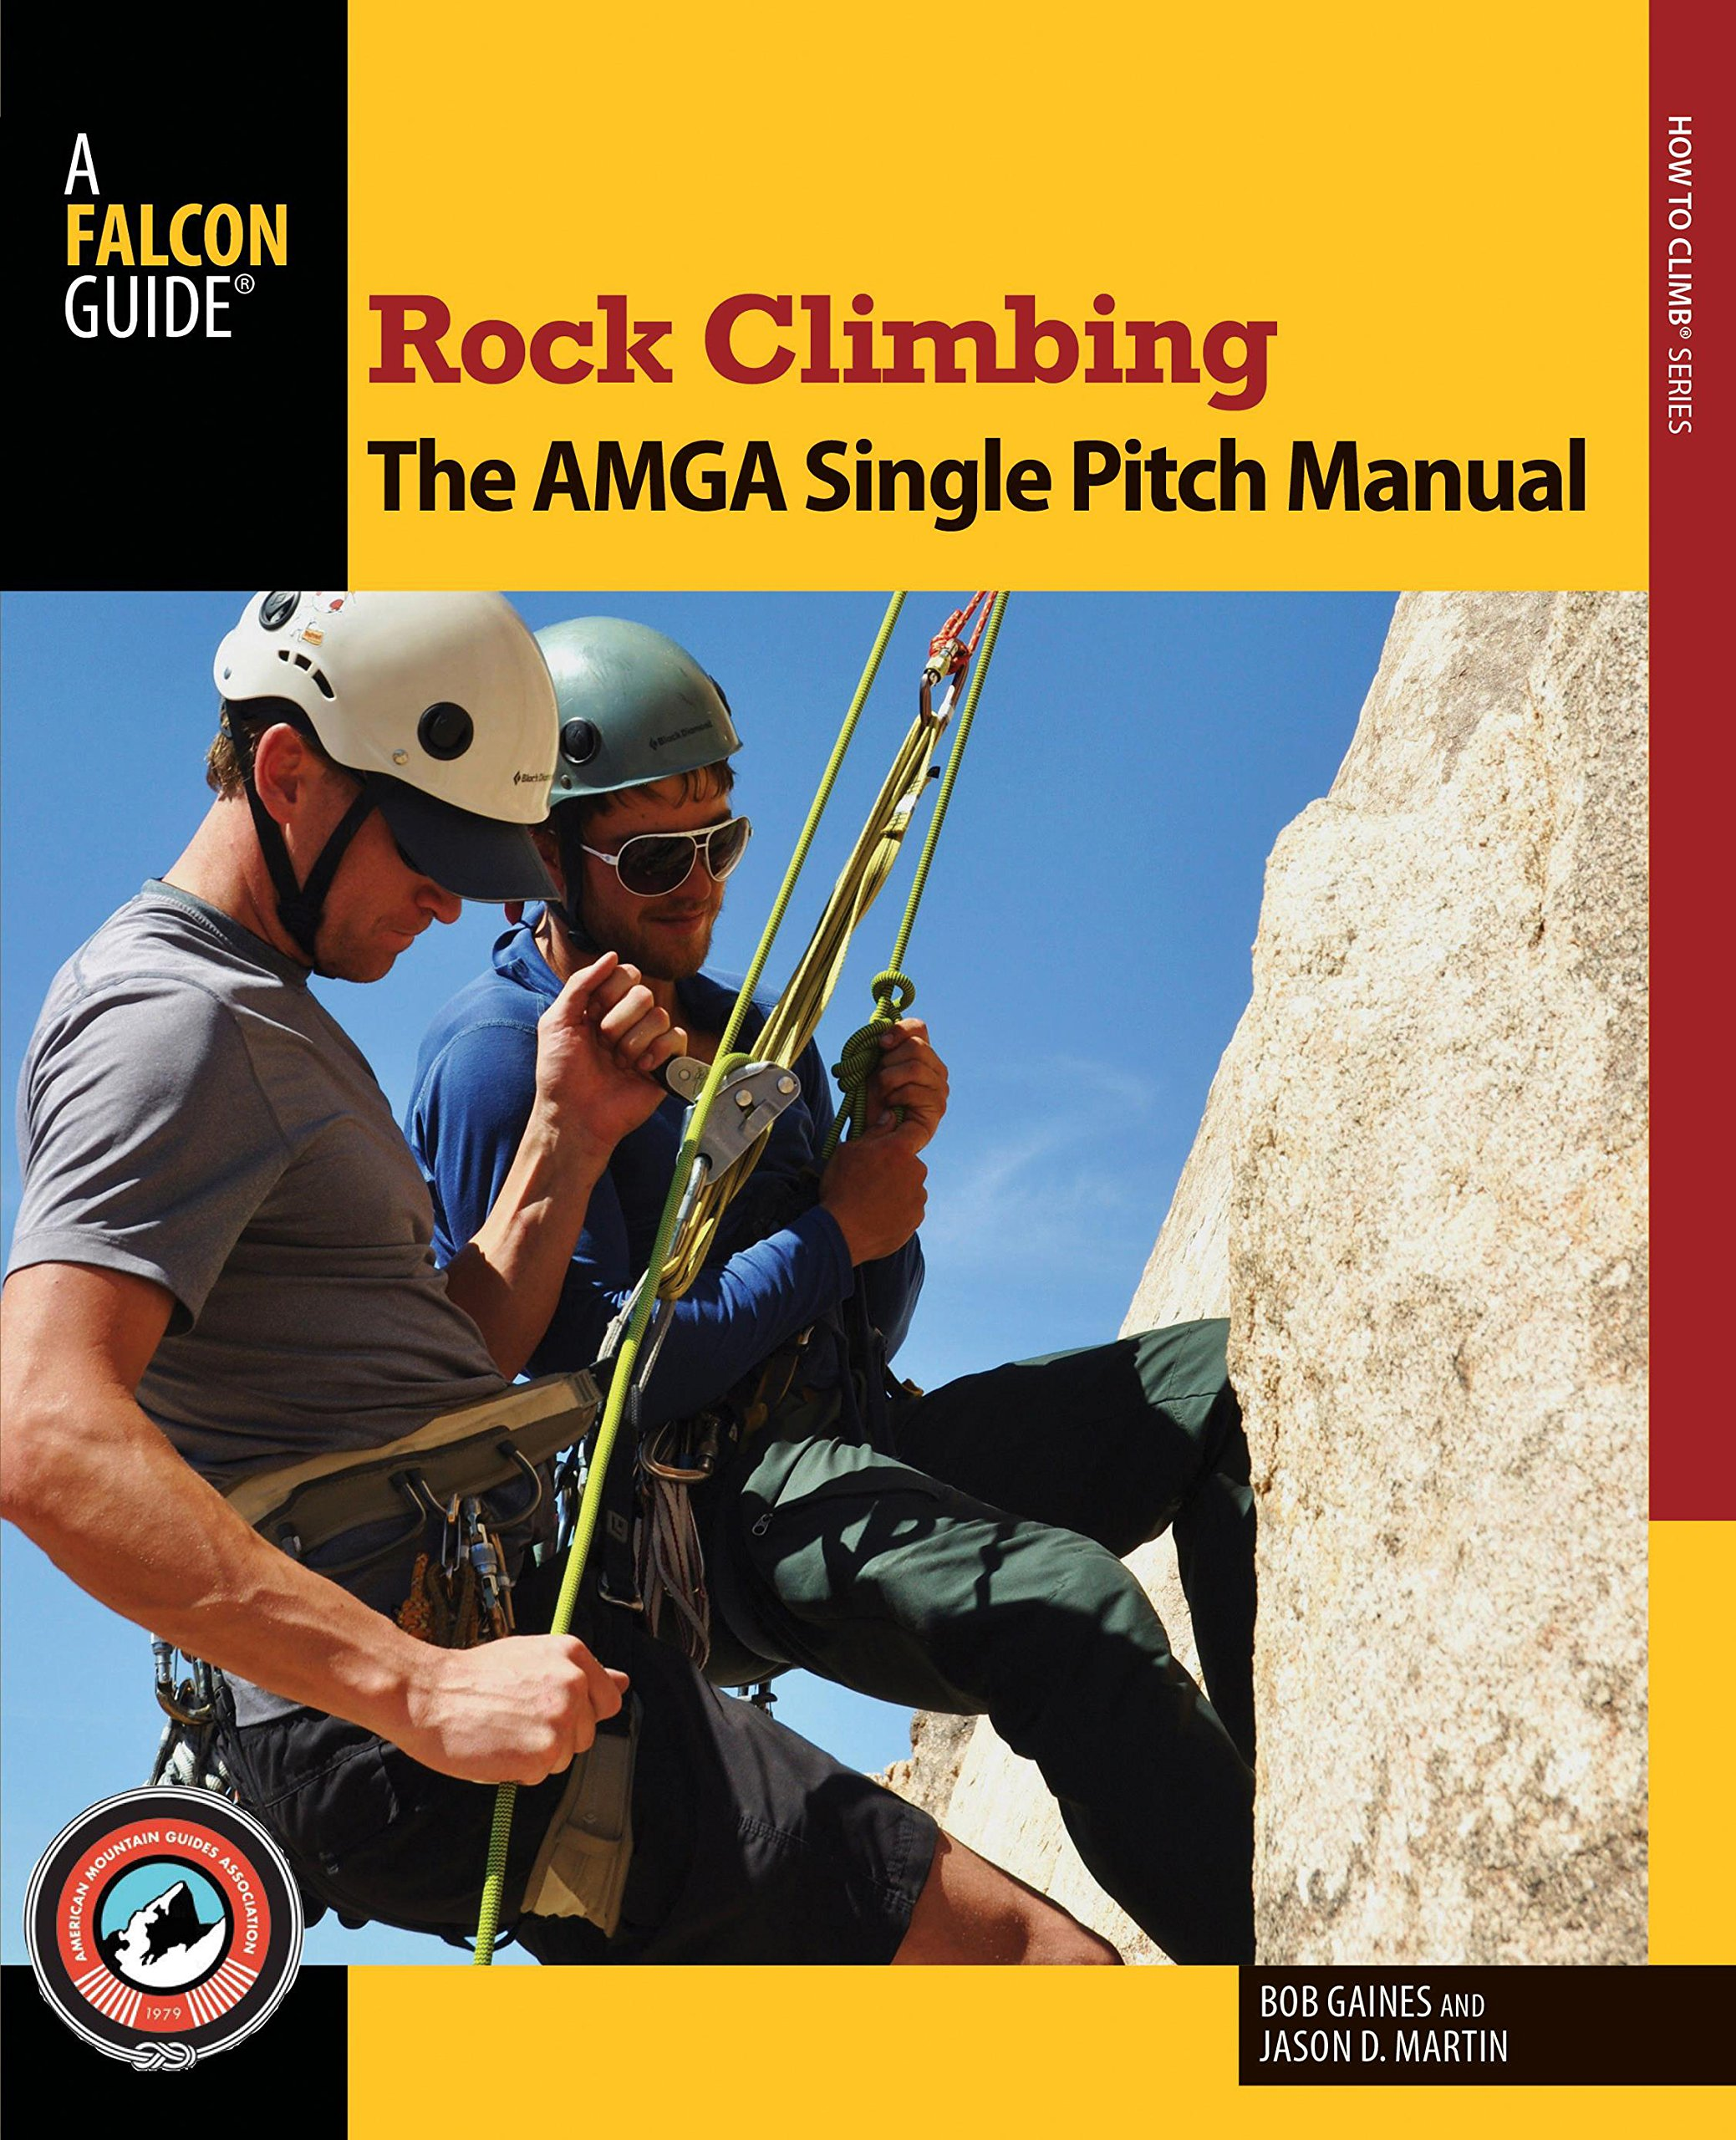 (How To Climb Series) Bob Gaines, Jason D. Martin-Rock climbing _ the AMGA single pitch manual-Falcon Guides_FalconGuides (2014)